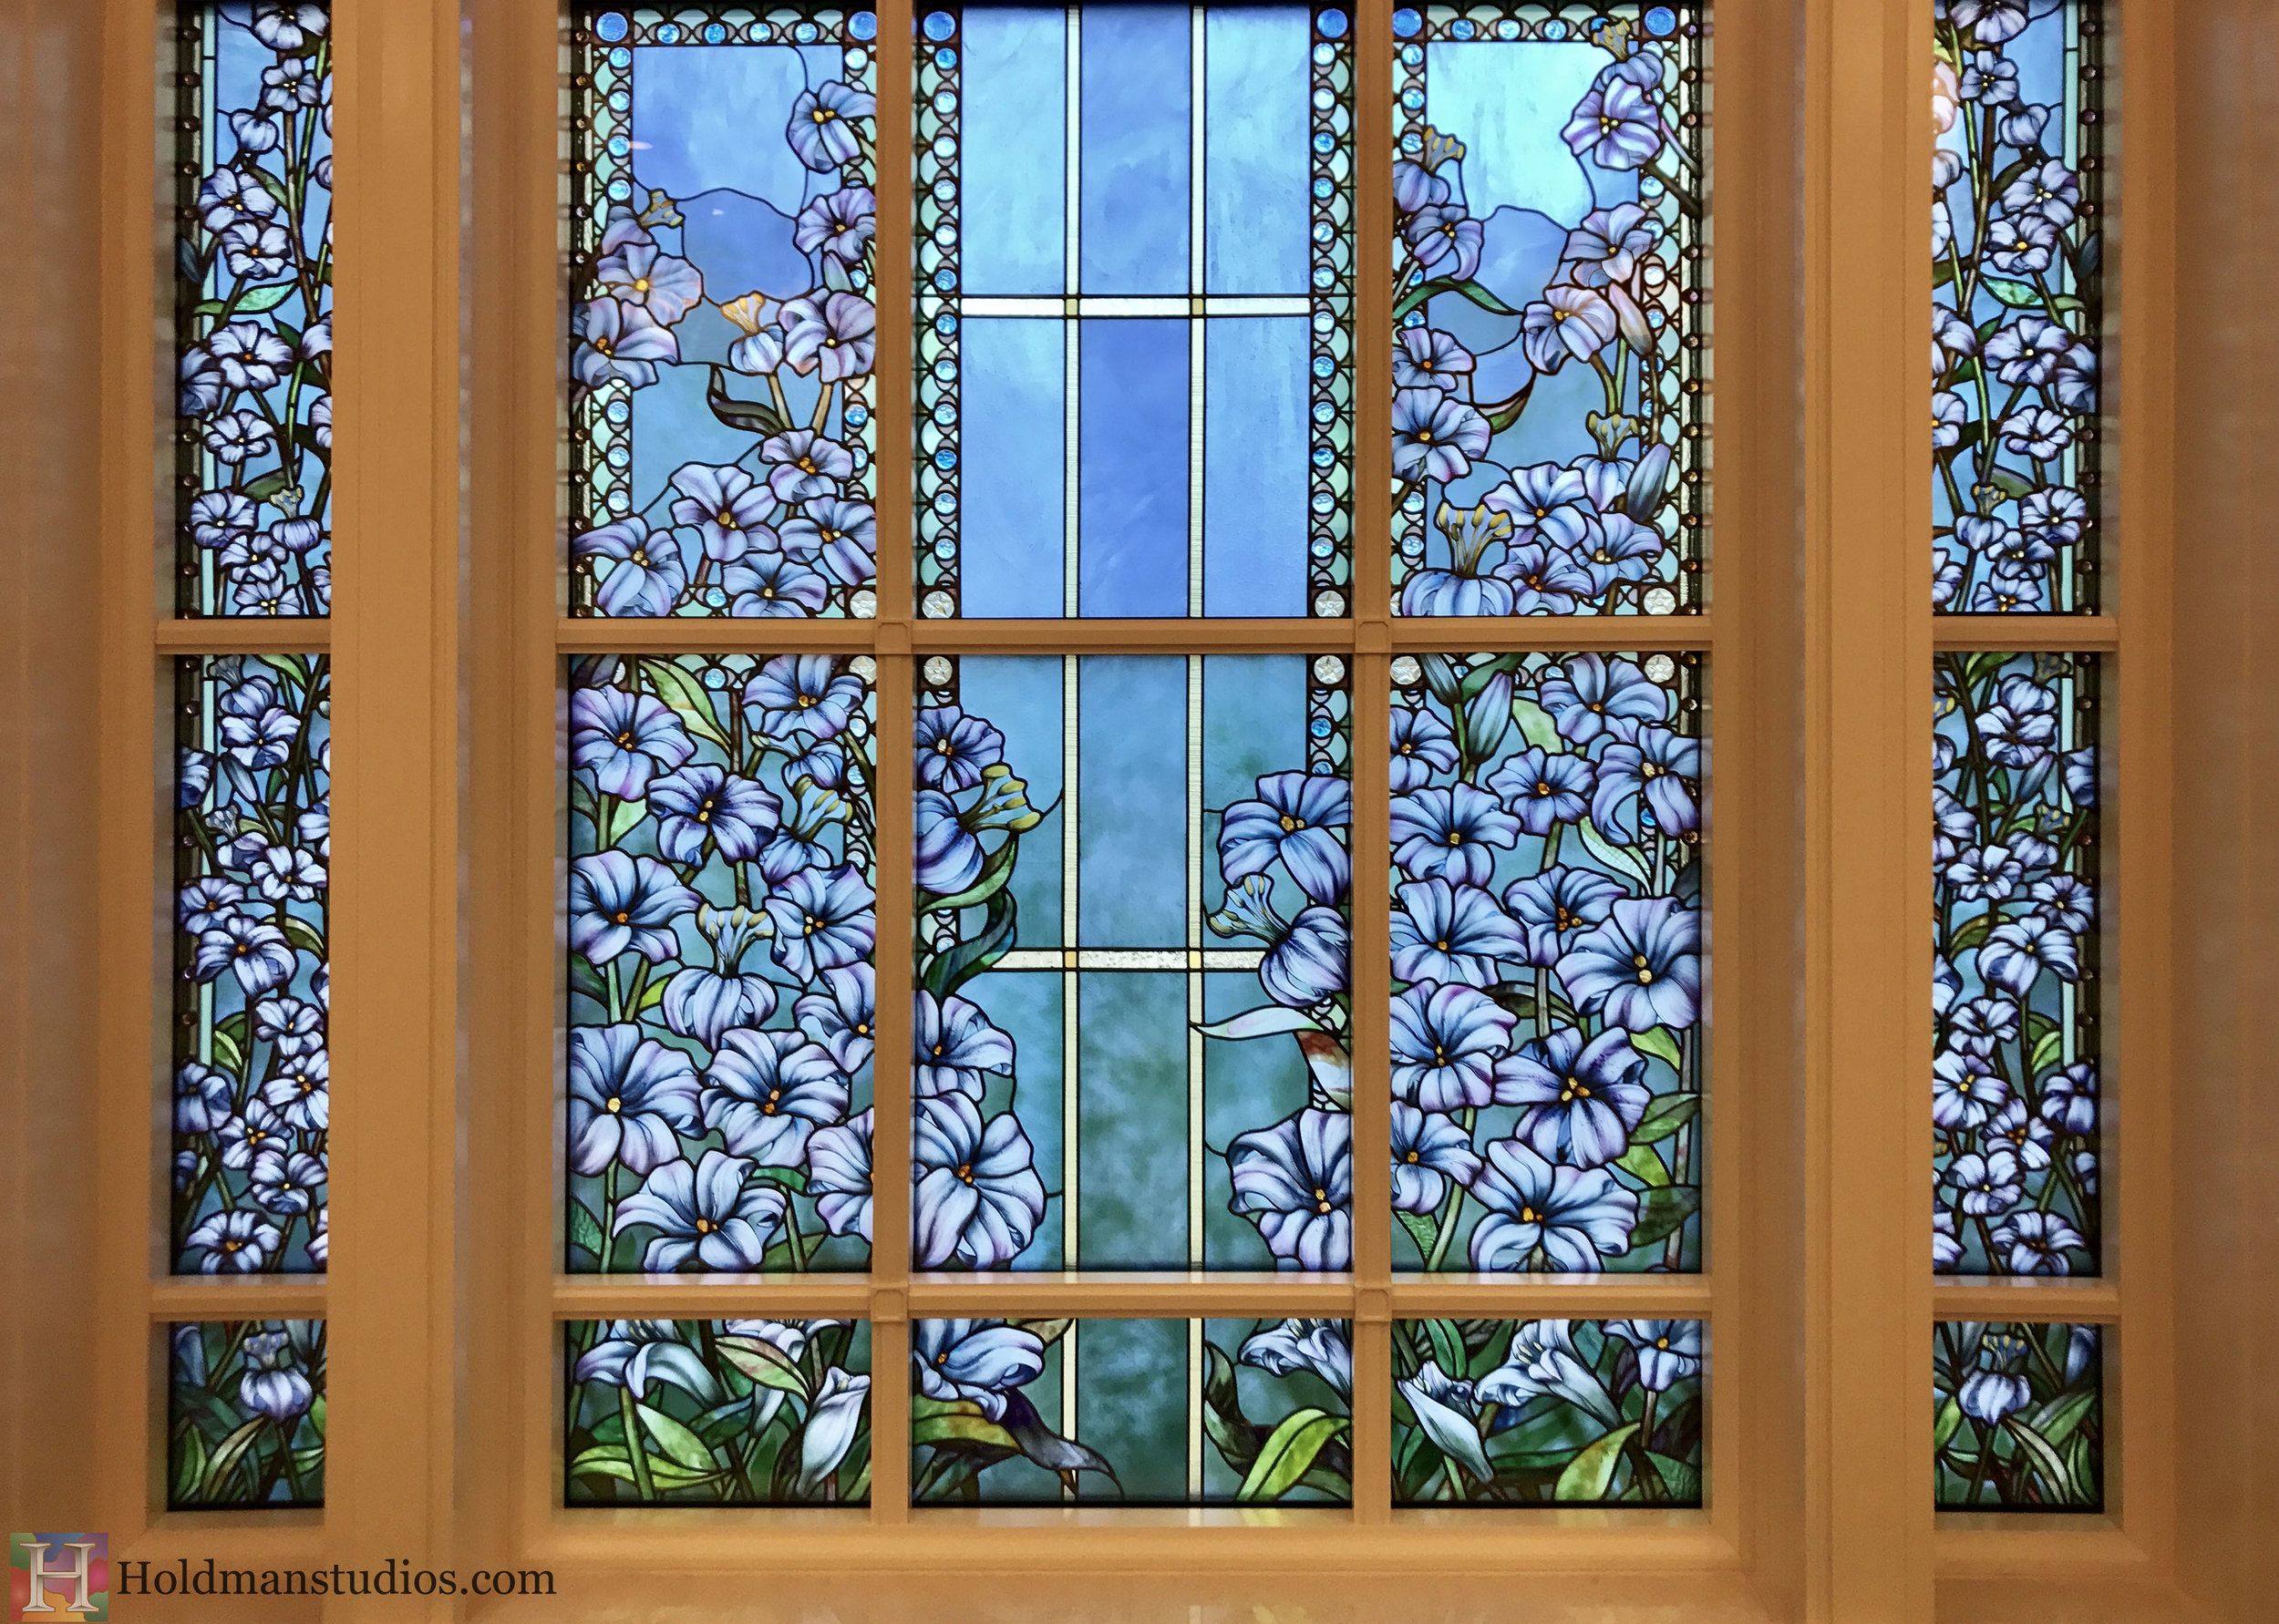 Holdman-Studios-Stained-Glass-Paris-LDS-Temple-Madonna-Lily-Flowers-Leaves-Window.jpg